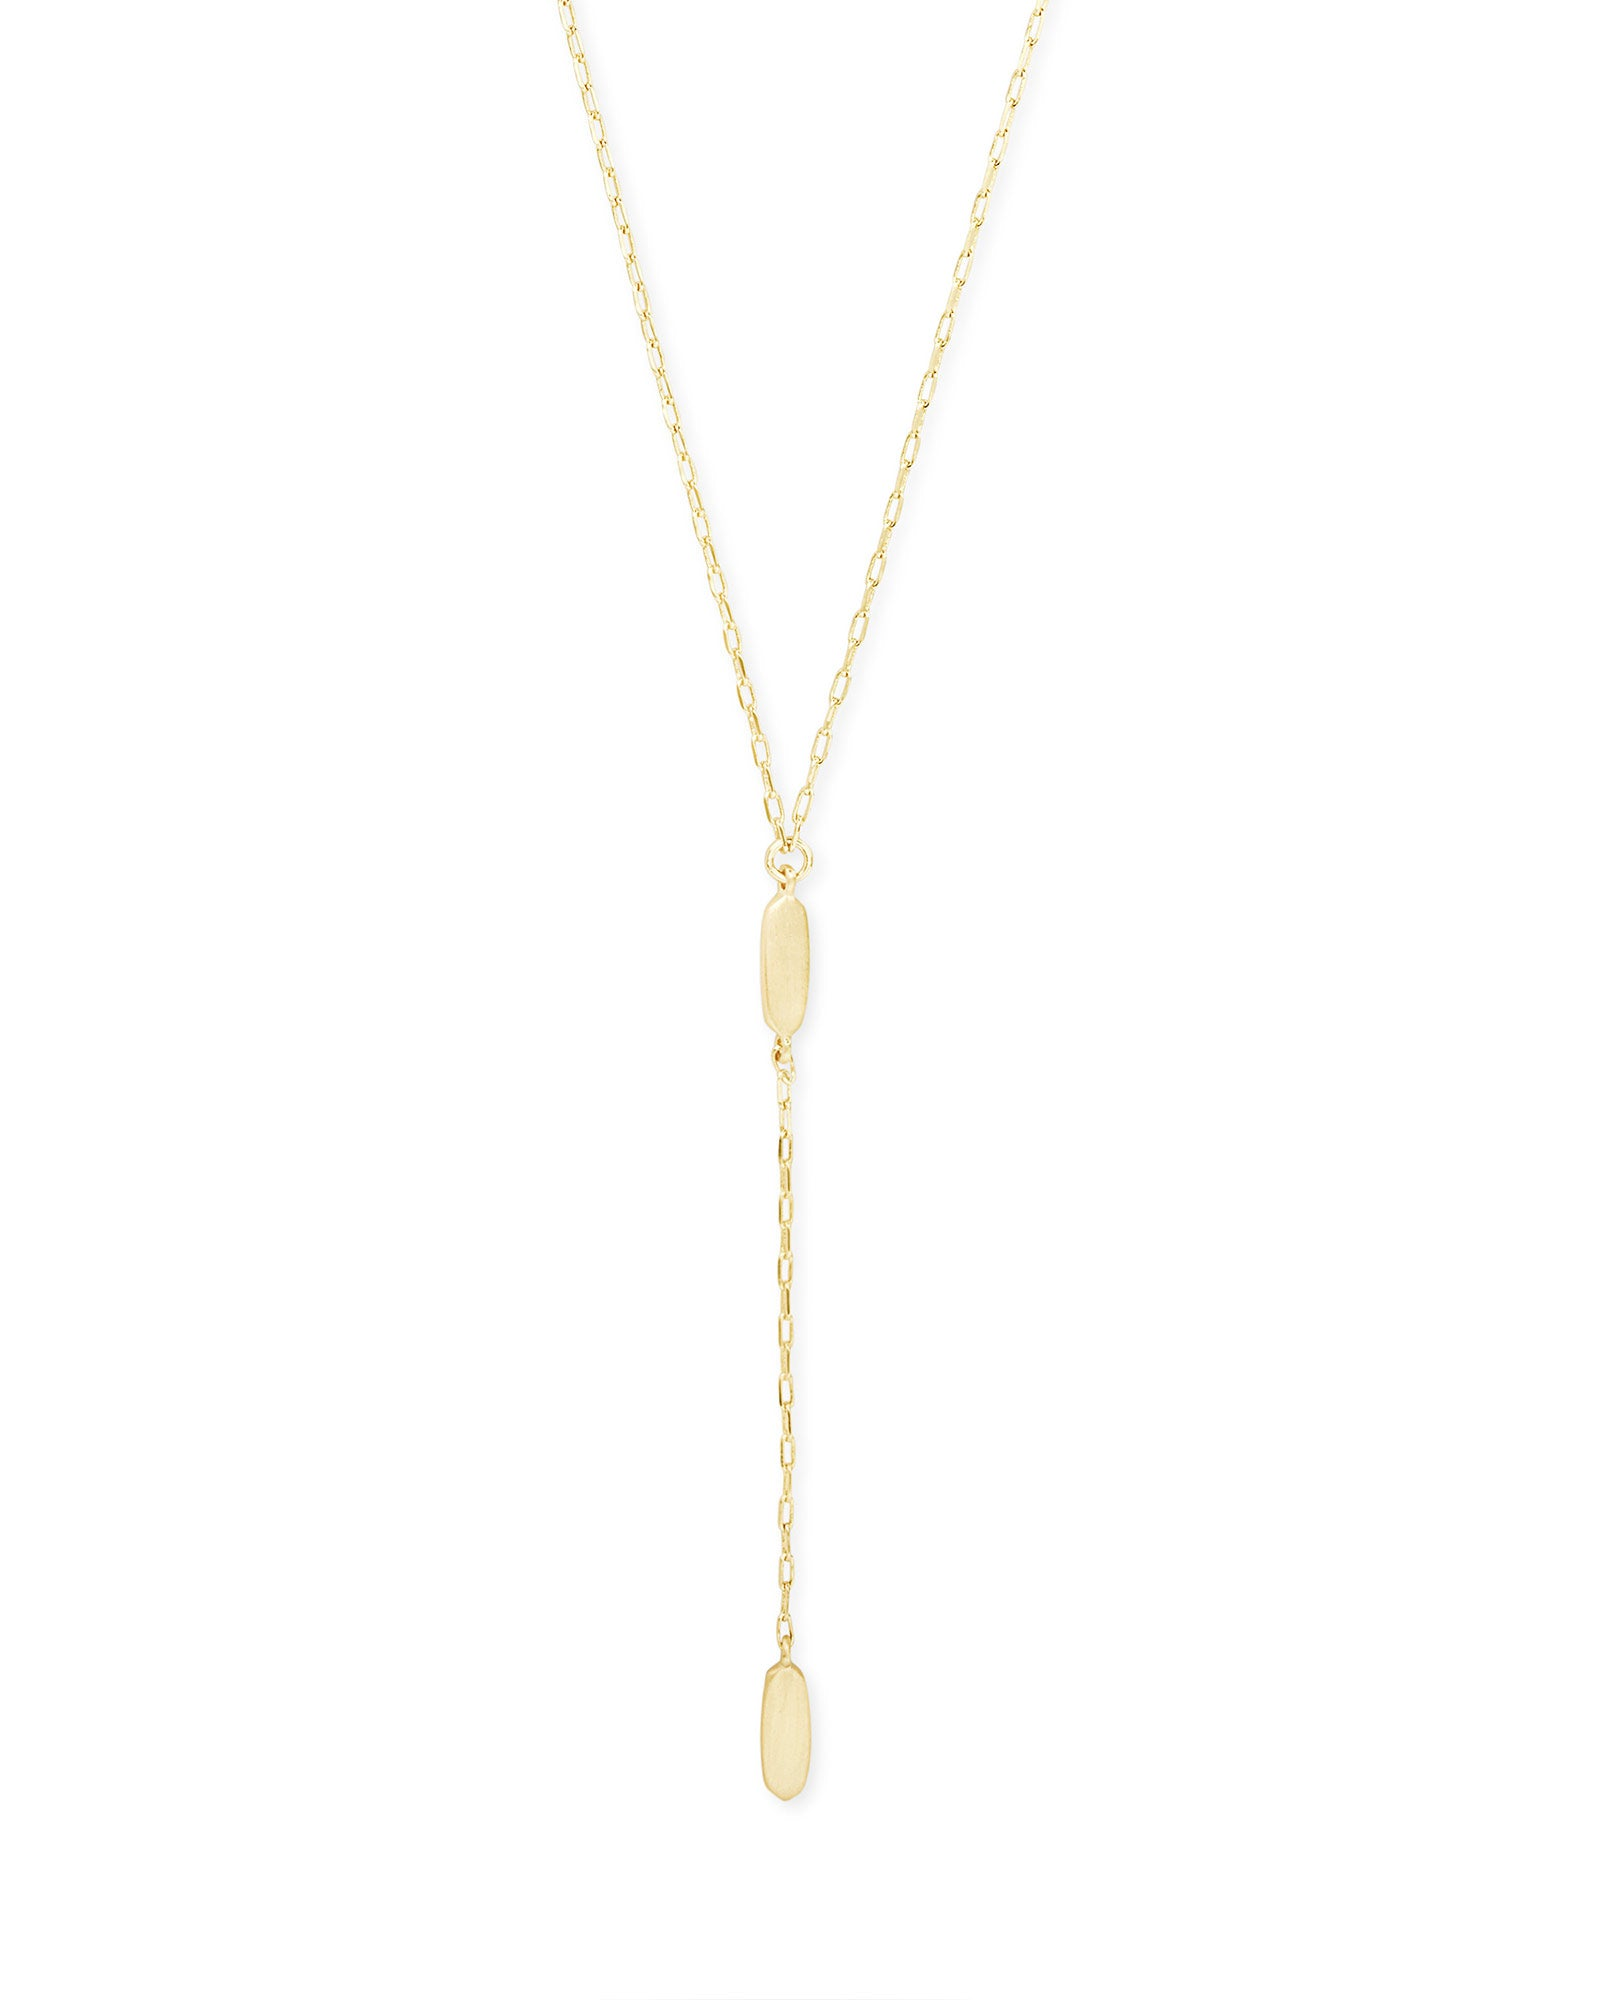 Kendra Scott Fern Y Necklace in Gold